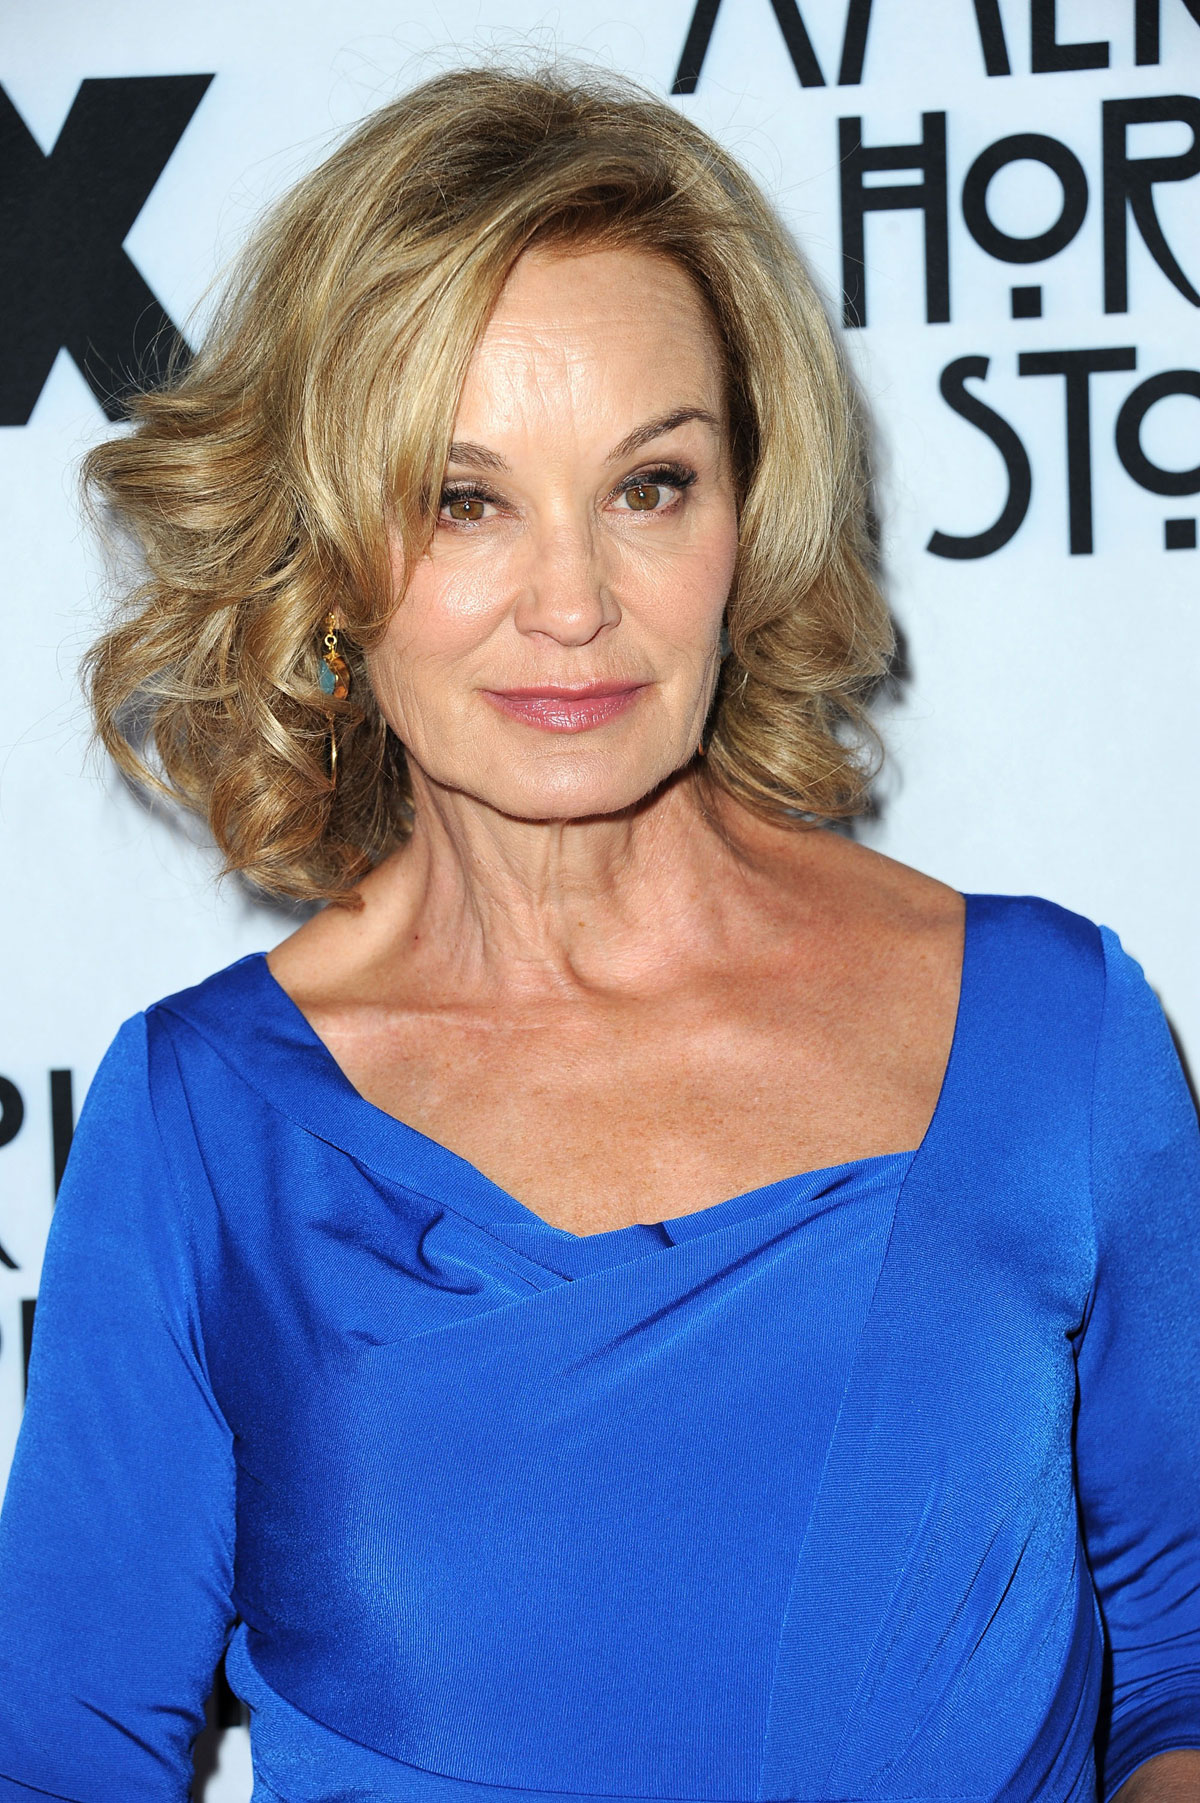 Jessica Lange Plastic Surgery – Rumors or Not?